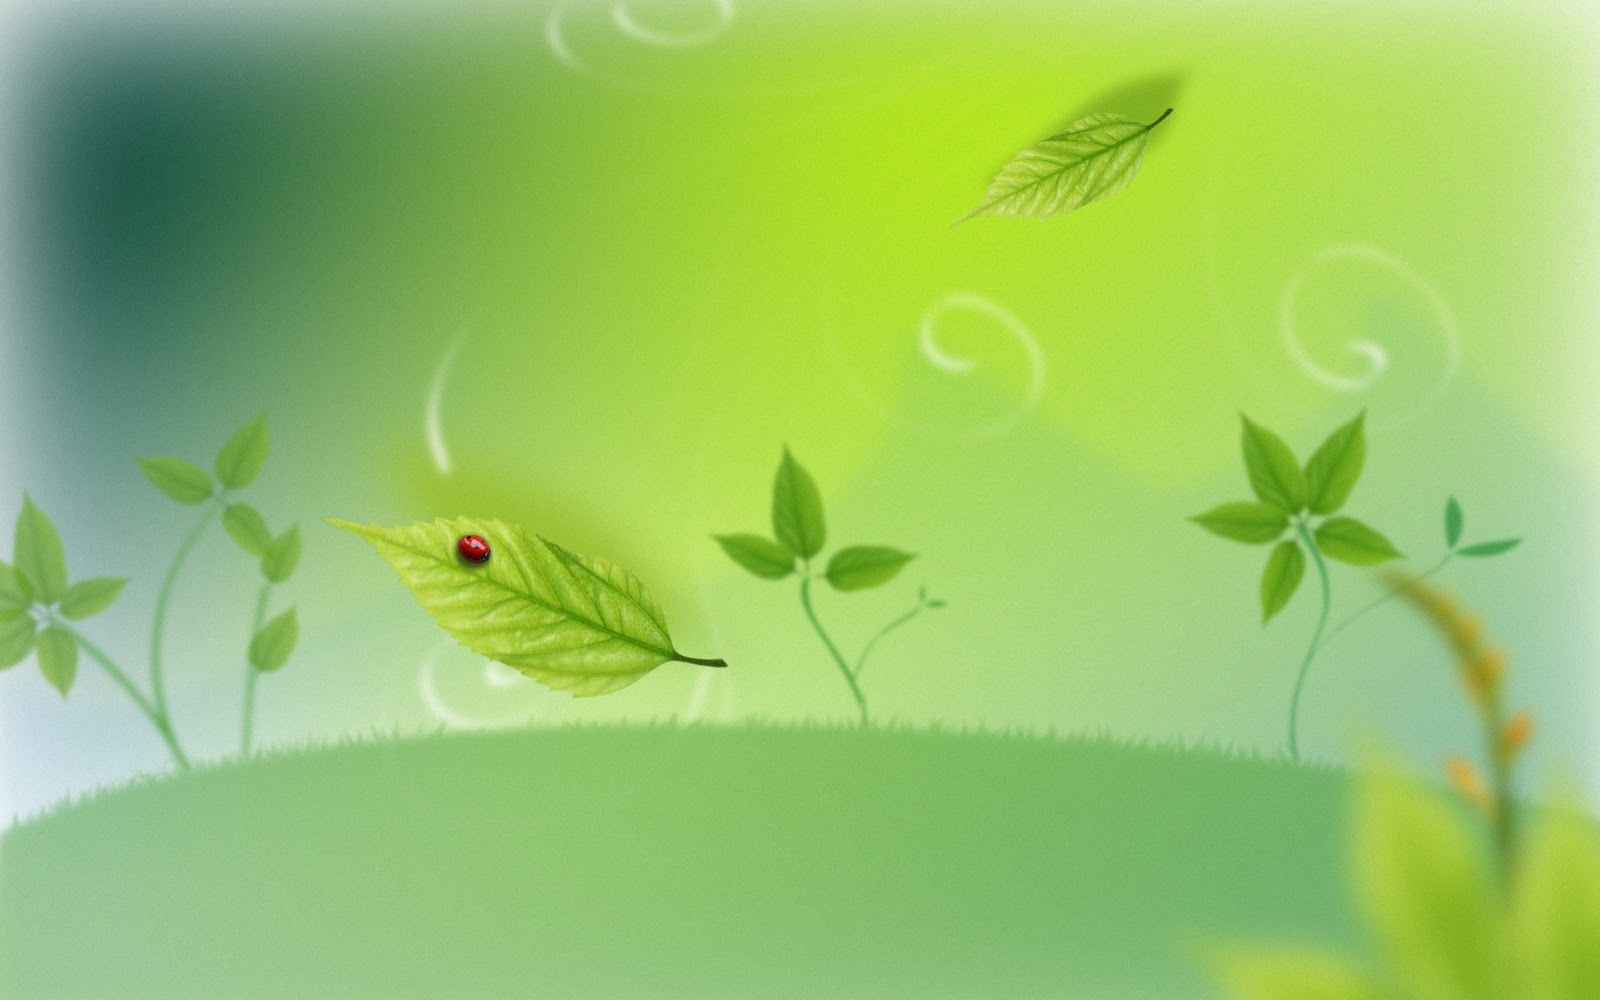 Artwork Wallpaper green background